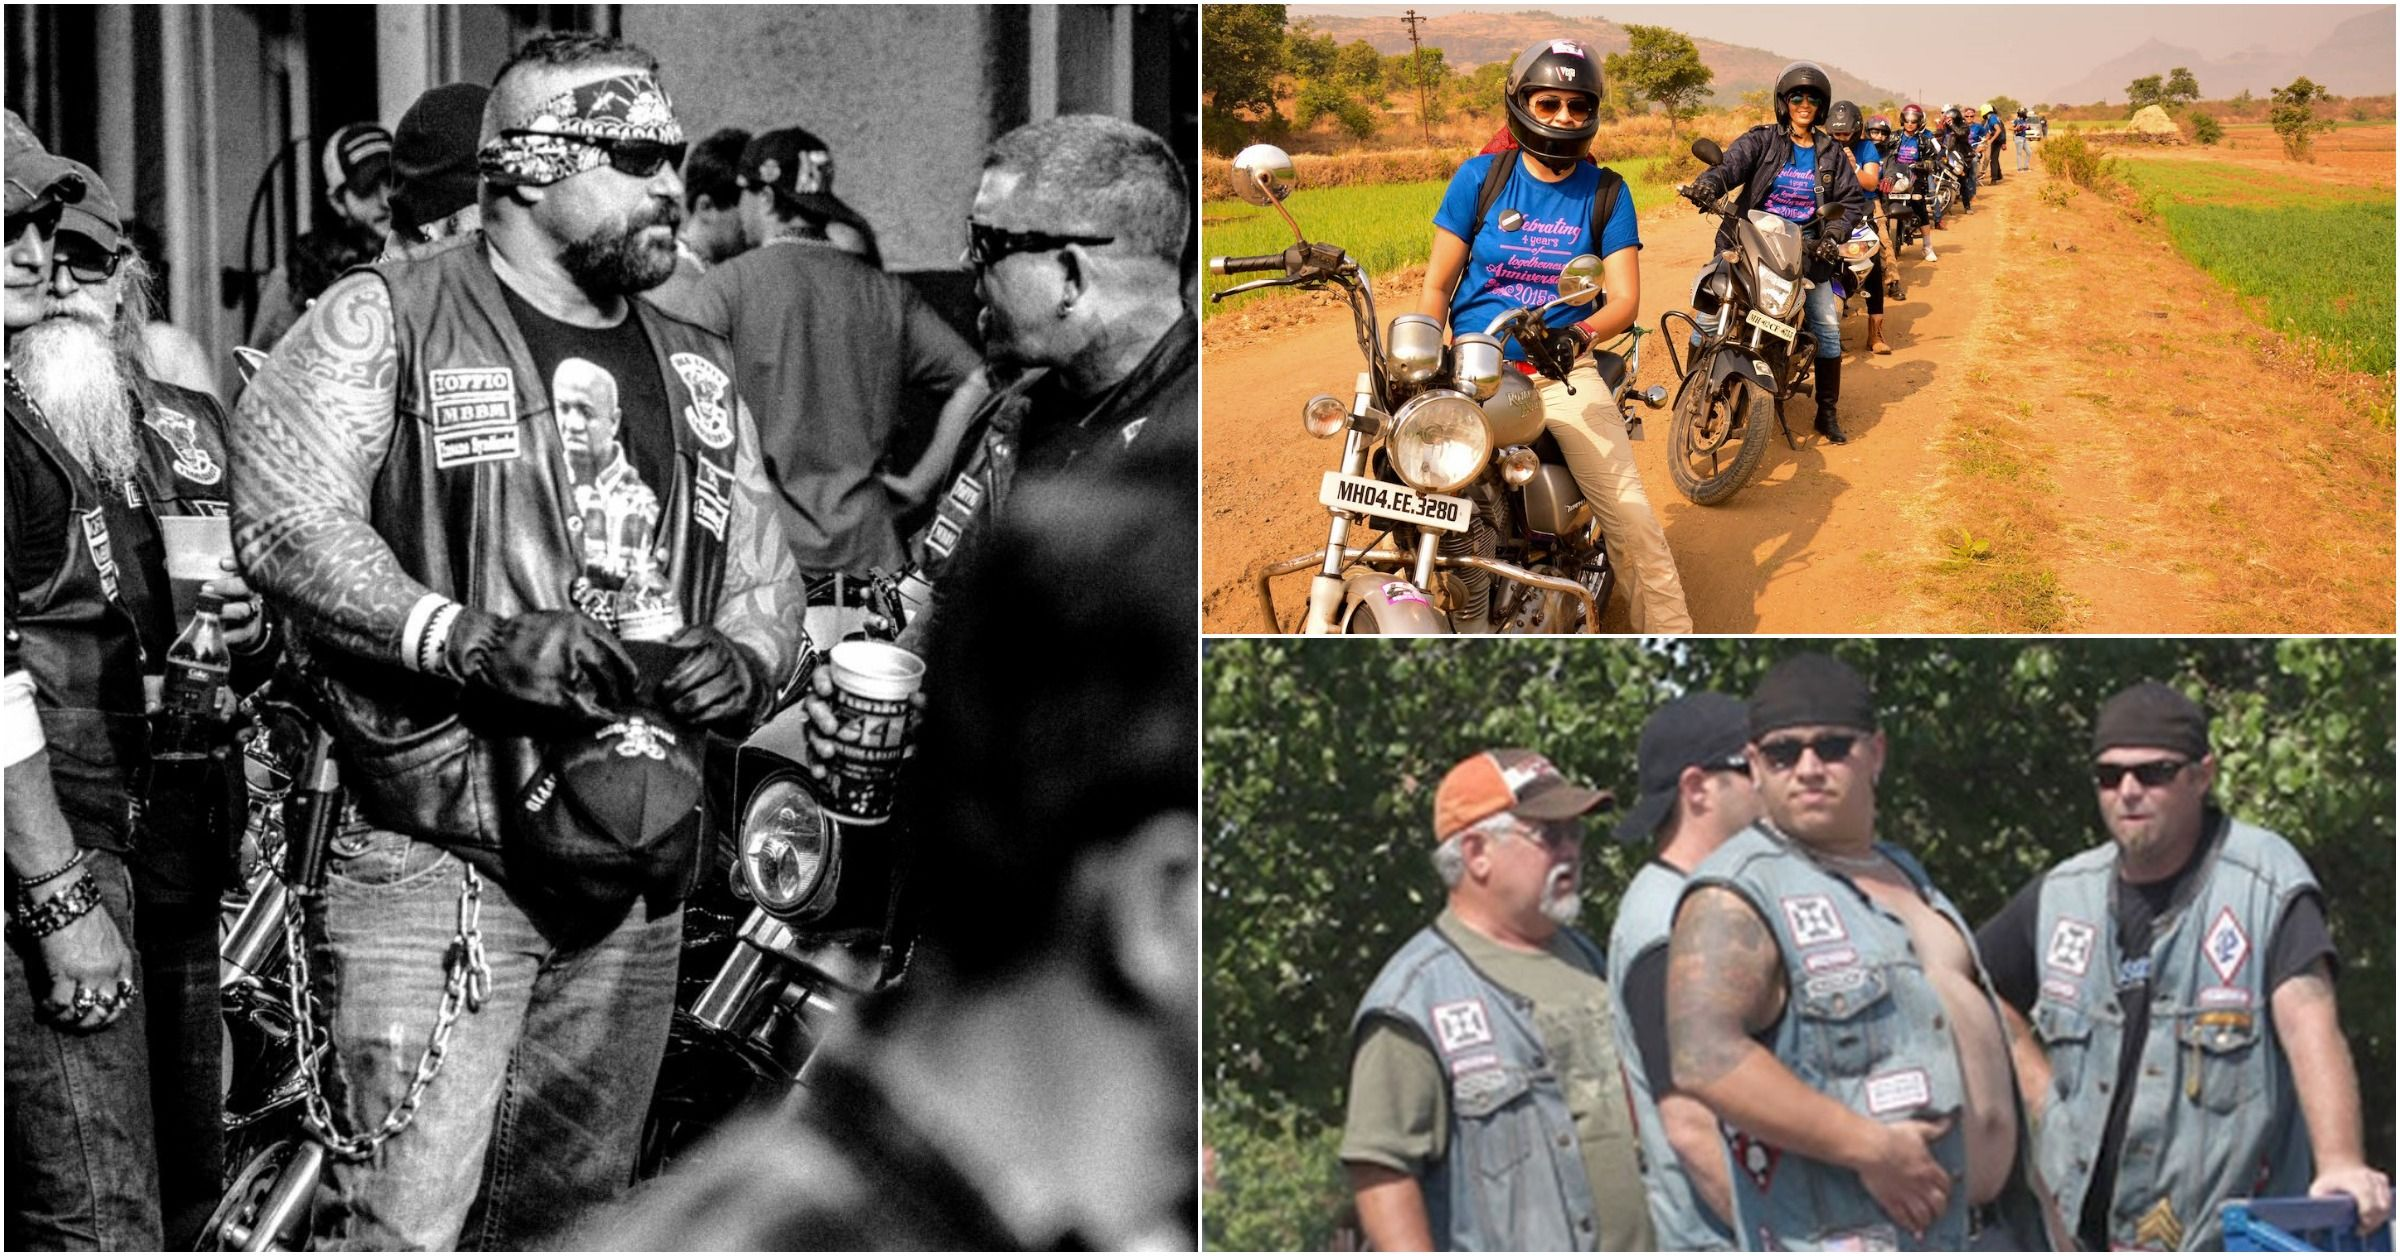 10 Motorcycle Clubs We Would Love to Be A Part Of (5 We Would Avoid)